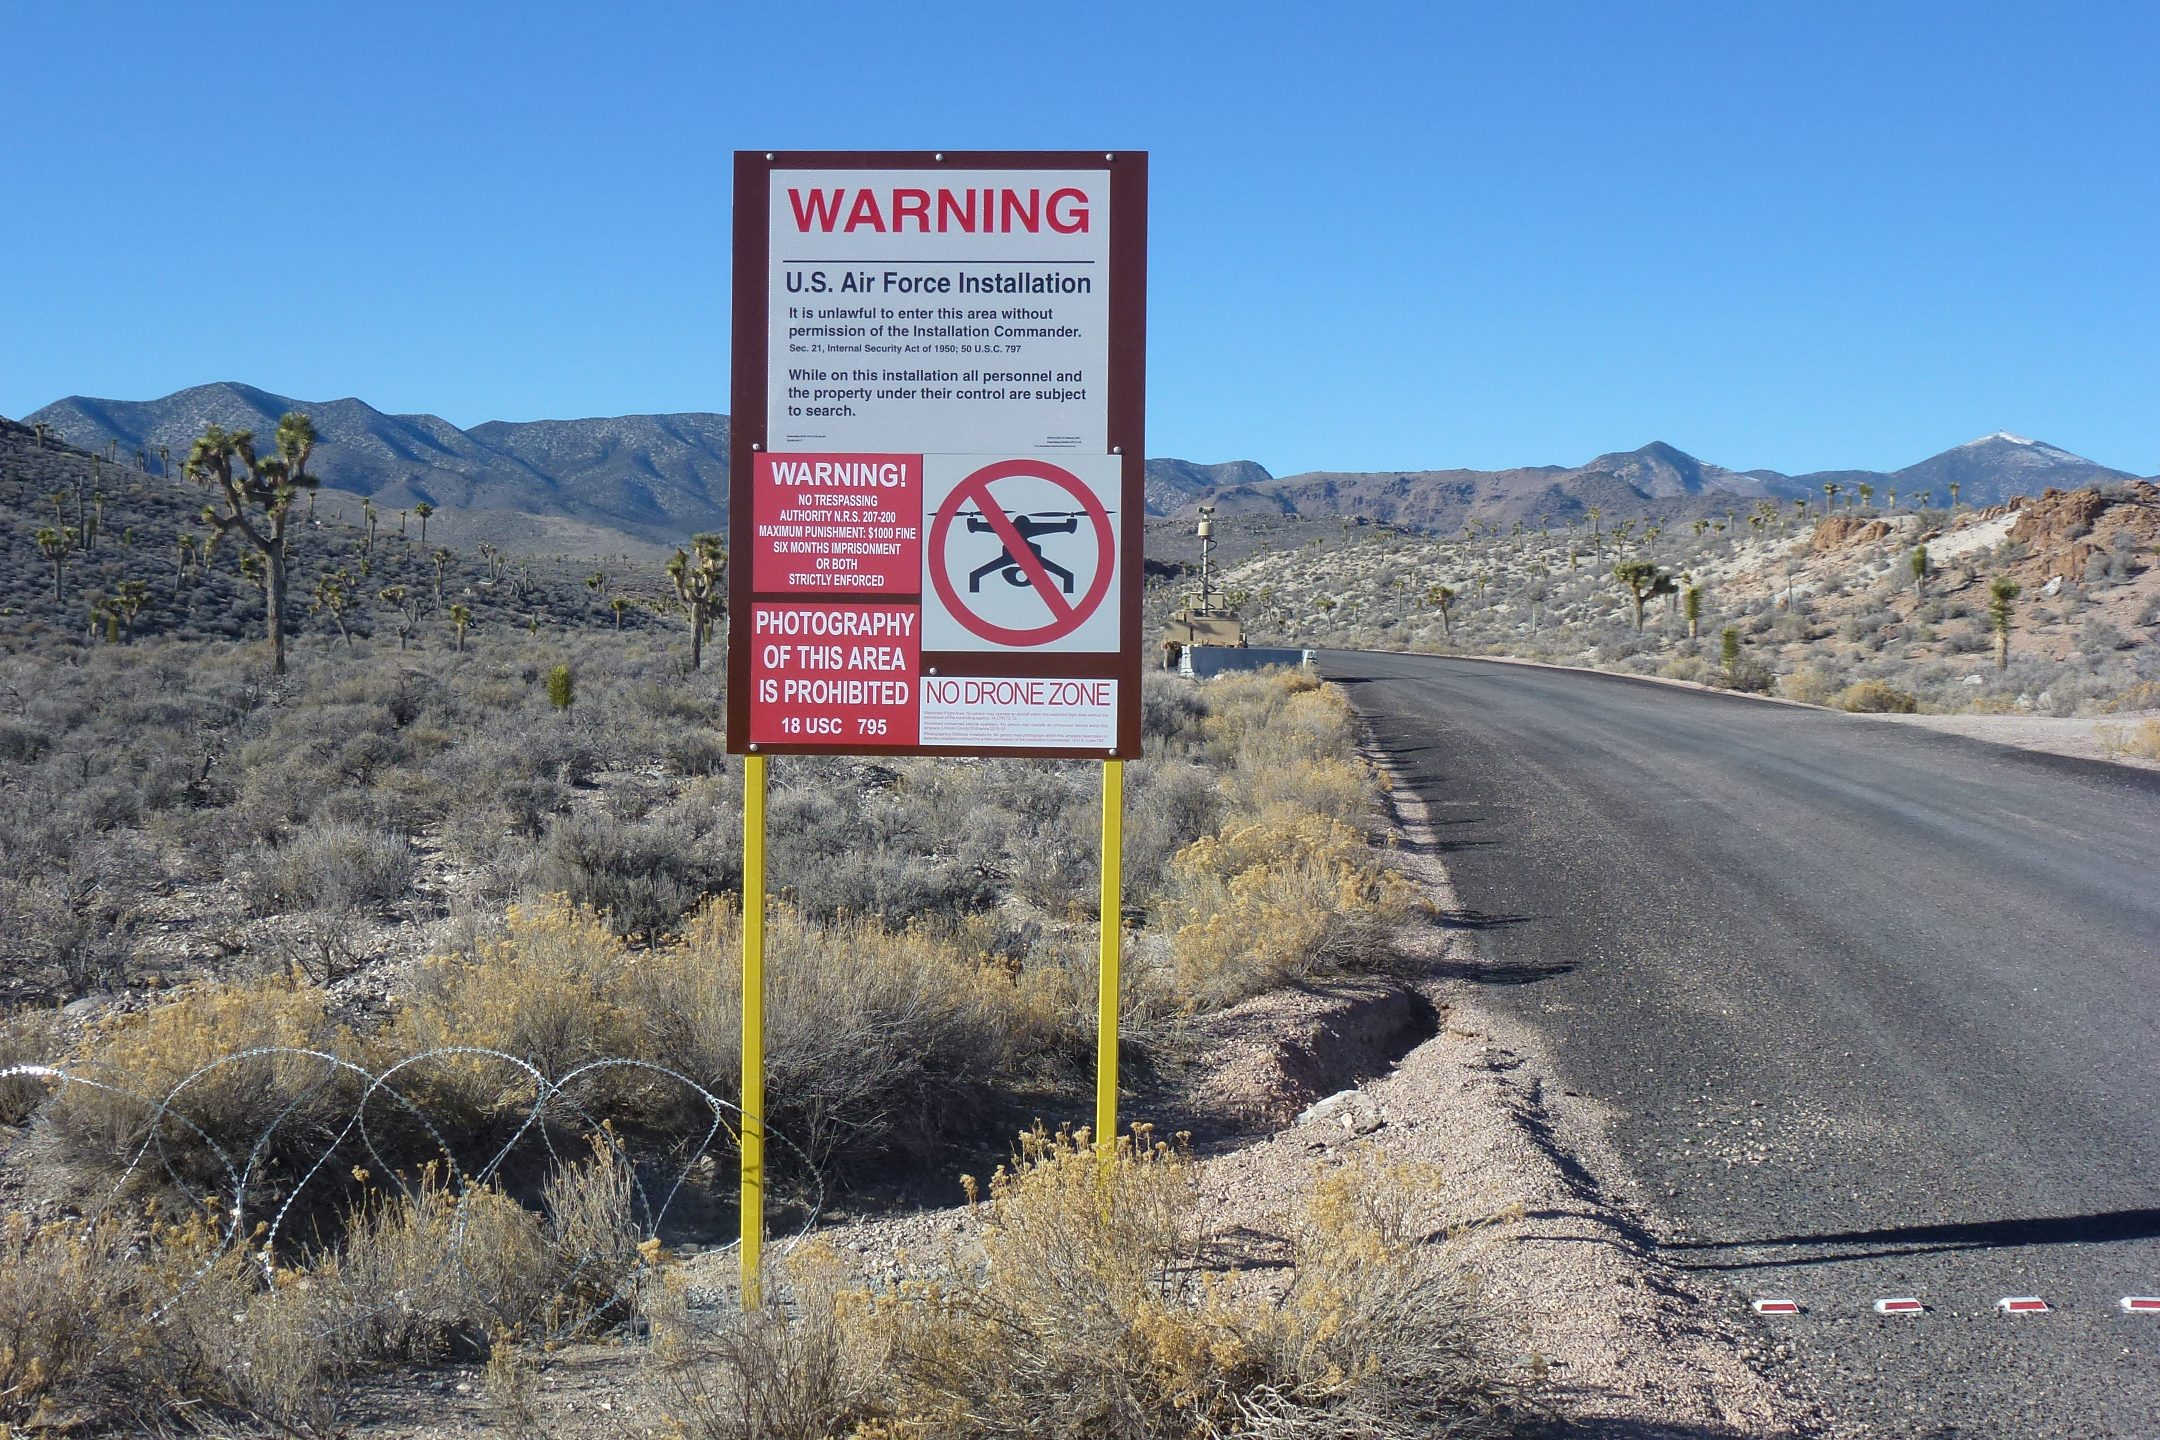 What Exactly Is The Government Hiding At Area 51